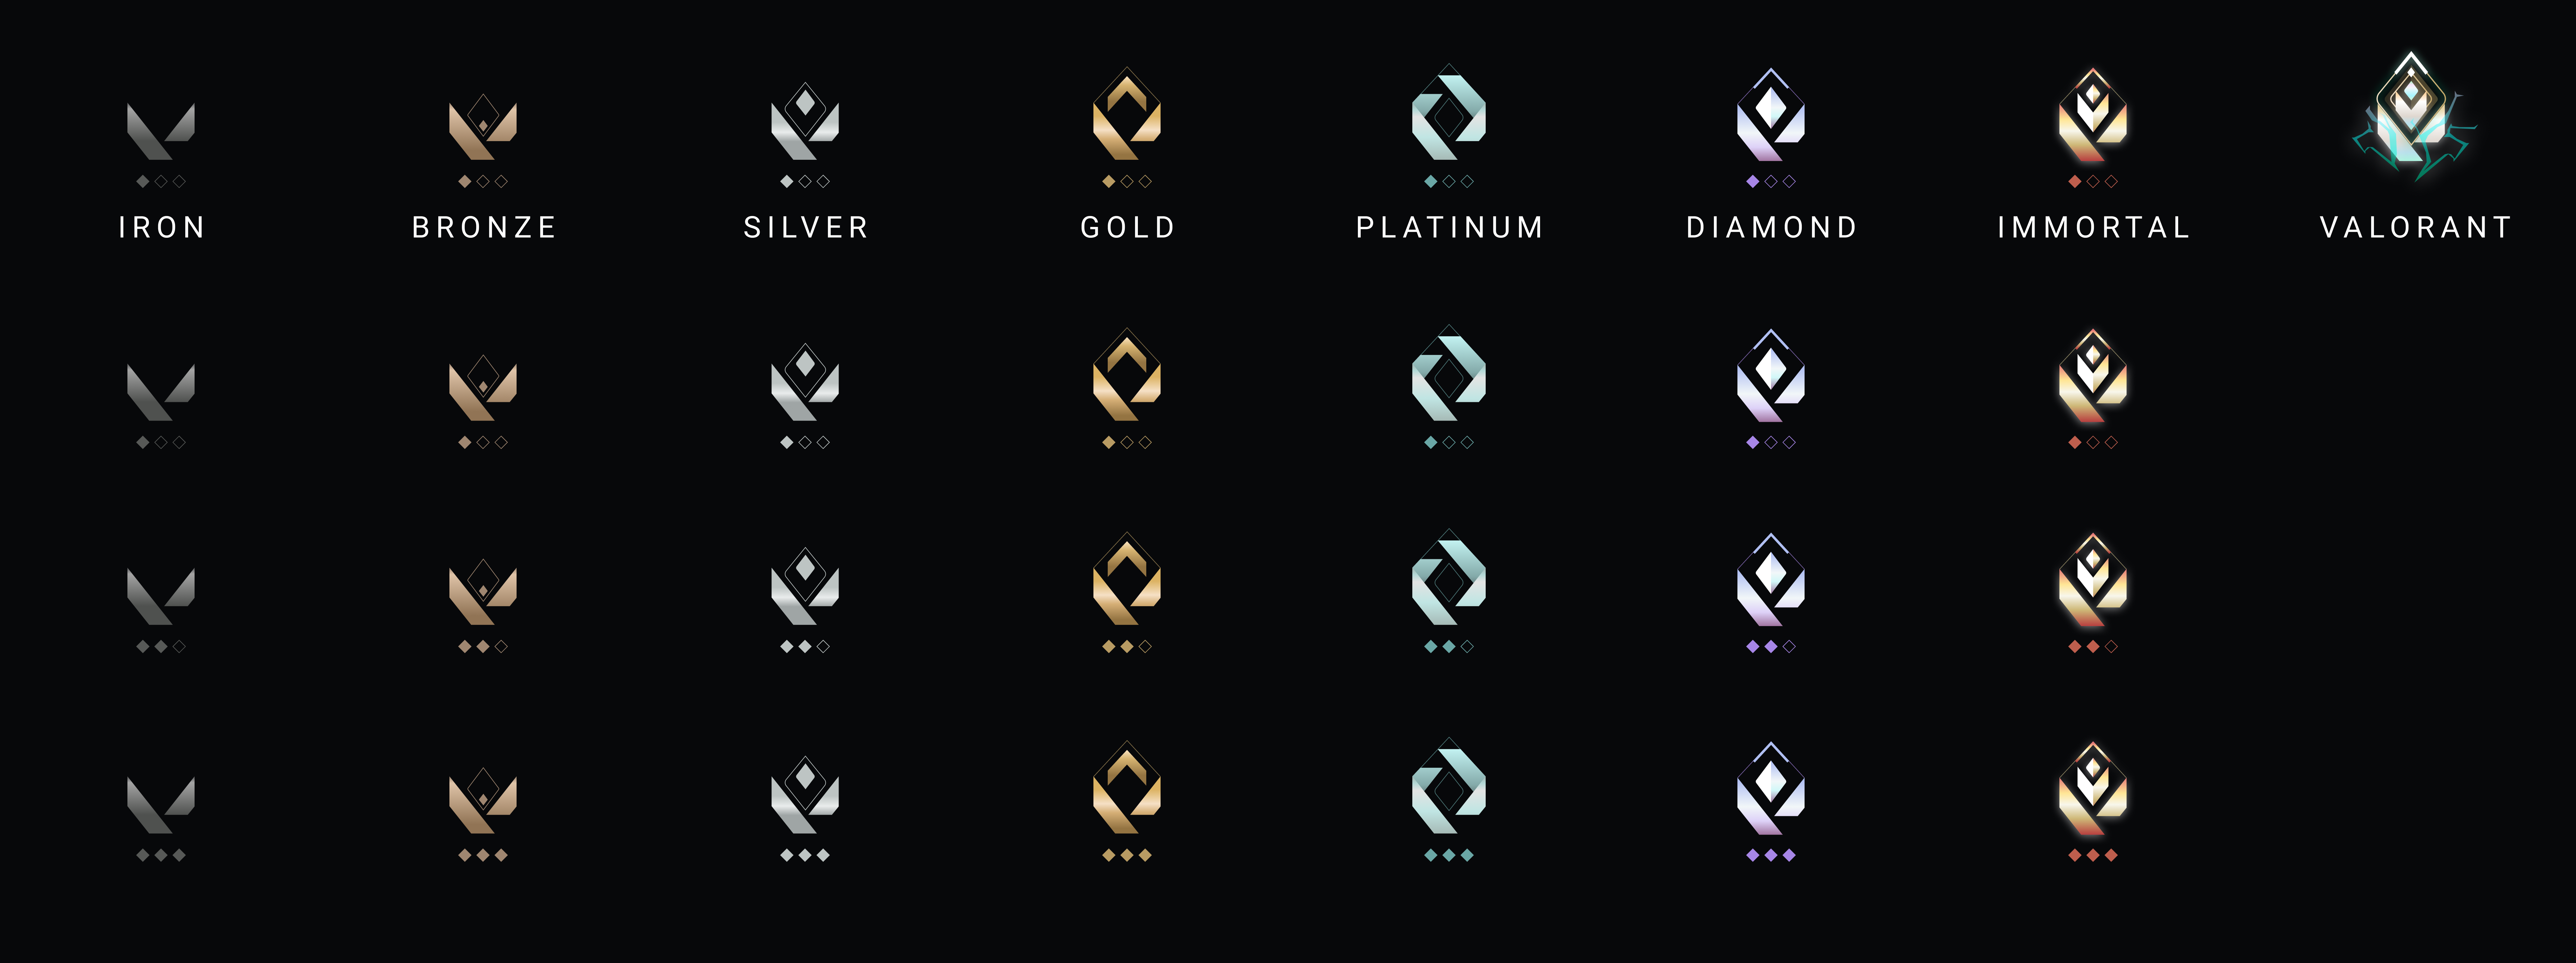 Valorant Fan Redesigns Ranked Icons With Clean And Stunning Look